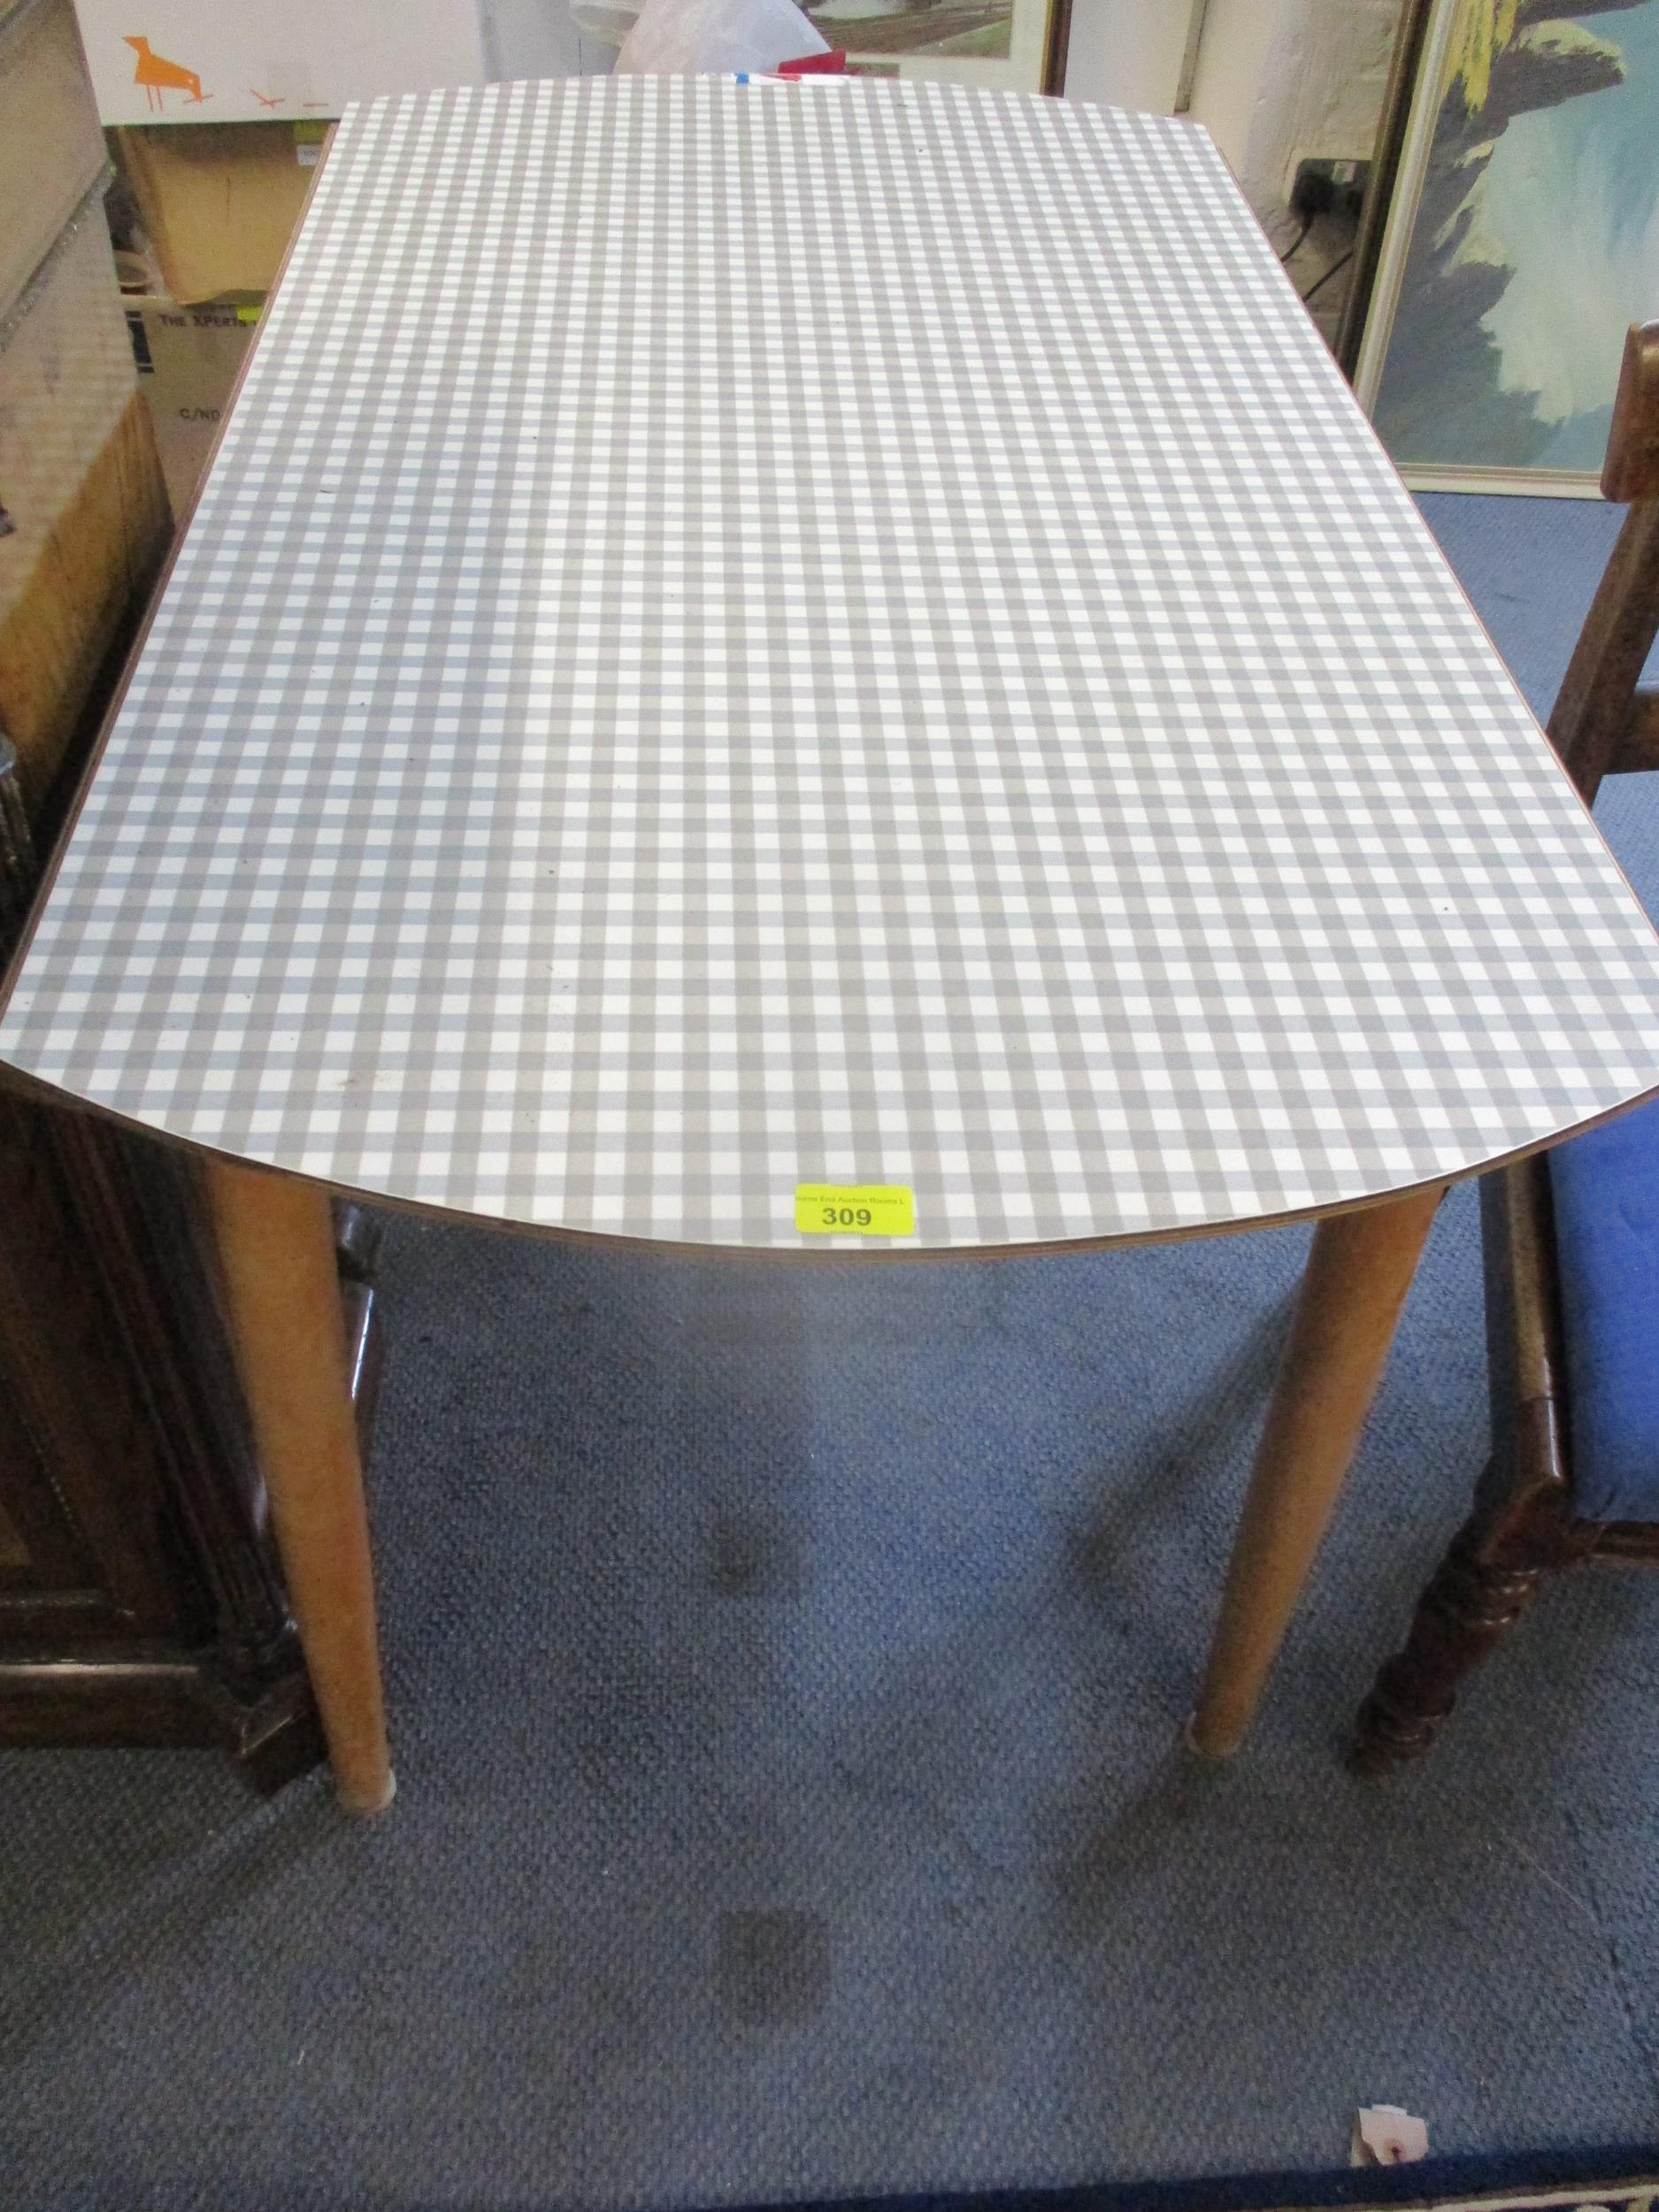 A vintage folding kitchen table with chequered Formica top above light wooden legs Location: RAM